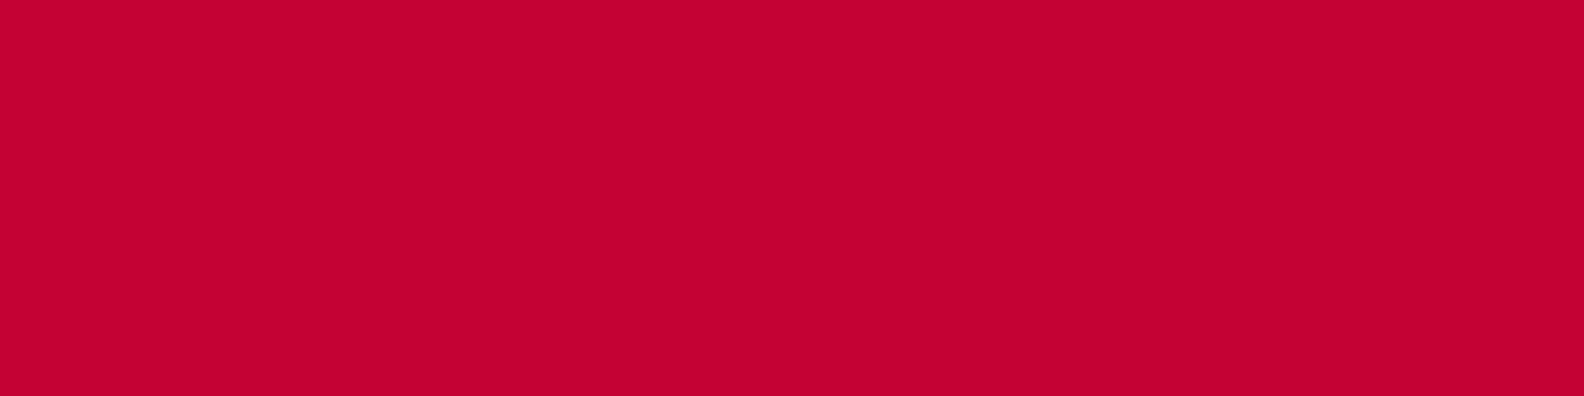 1584x396 Red NCS Solid Color Background